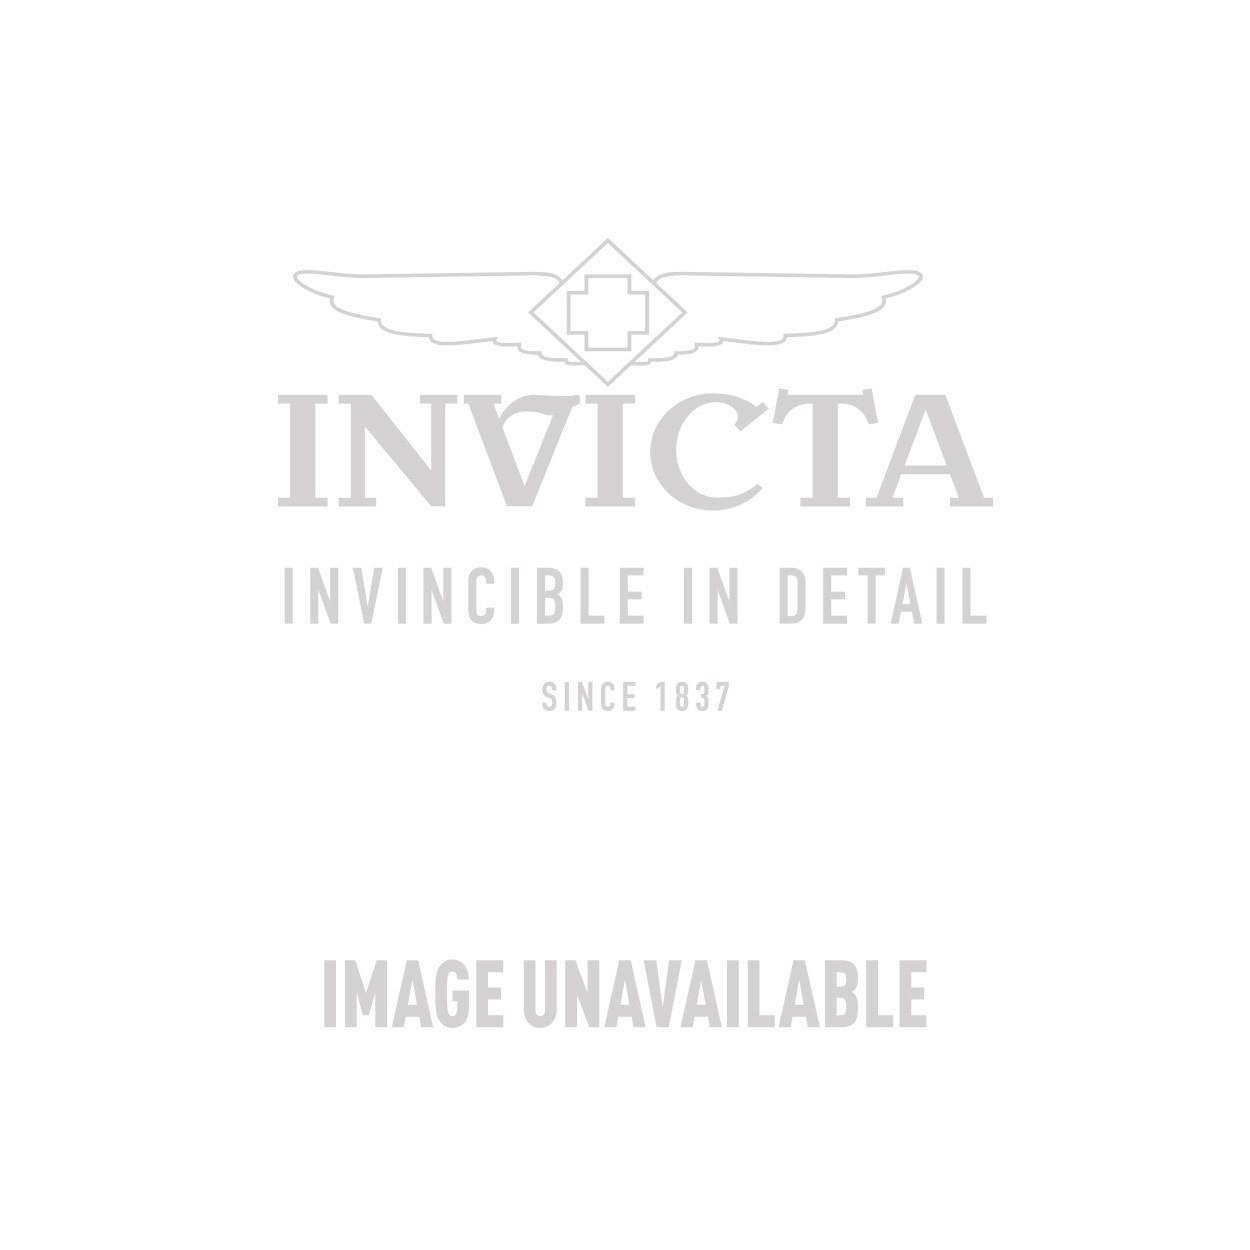 Invicta Specialty Quartz Watch - Black, Stainless Steel case with Steel, Black tone Stainless Steel band - Model 18055